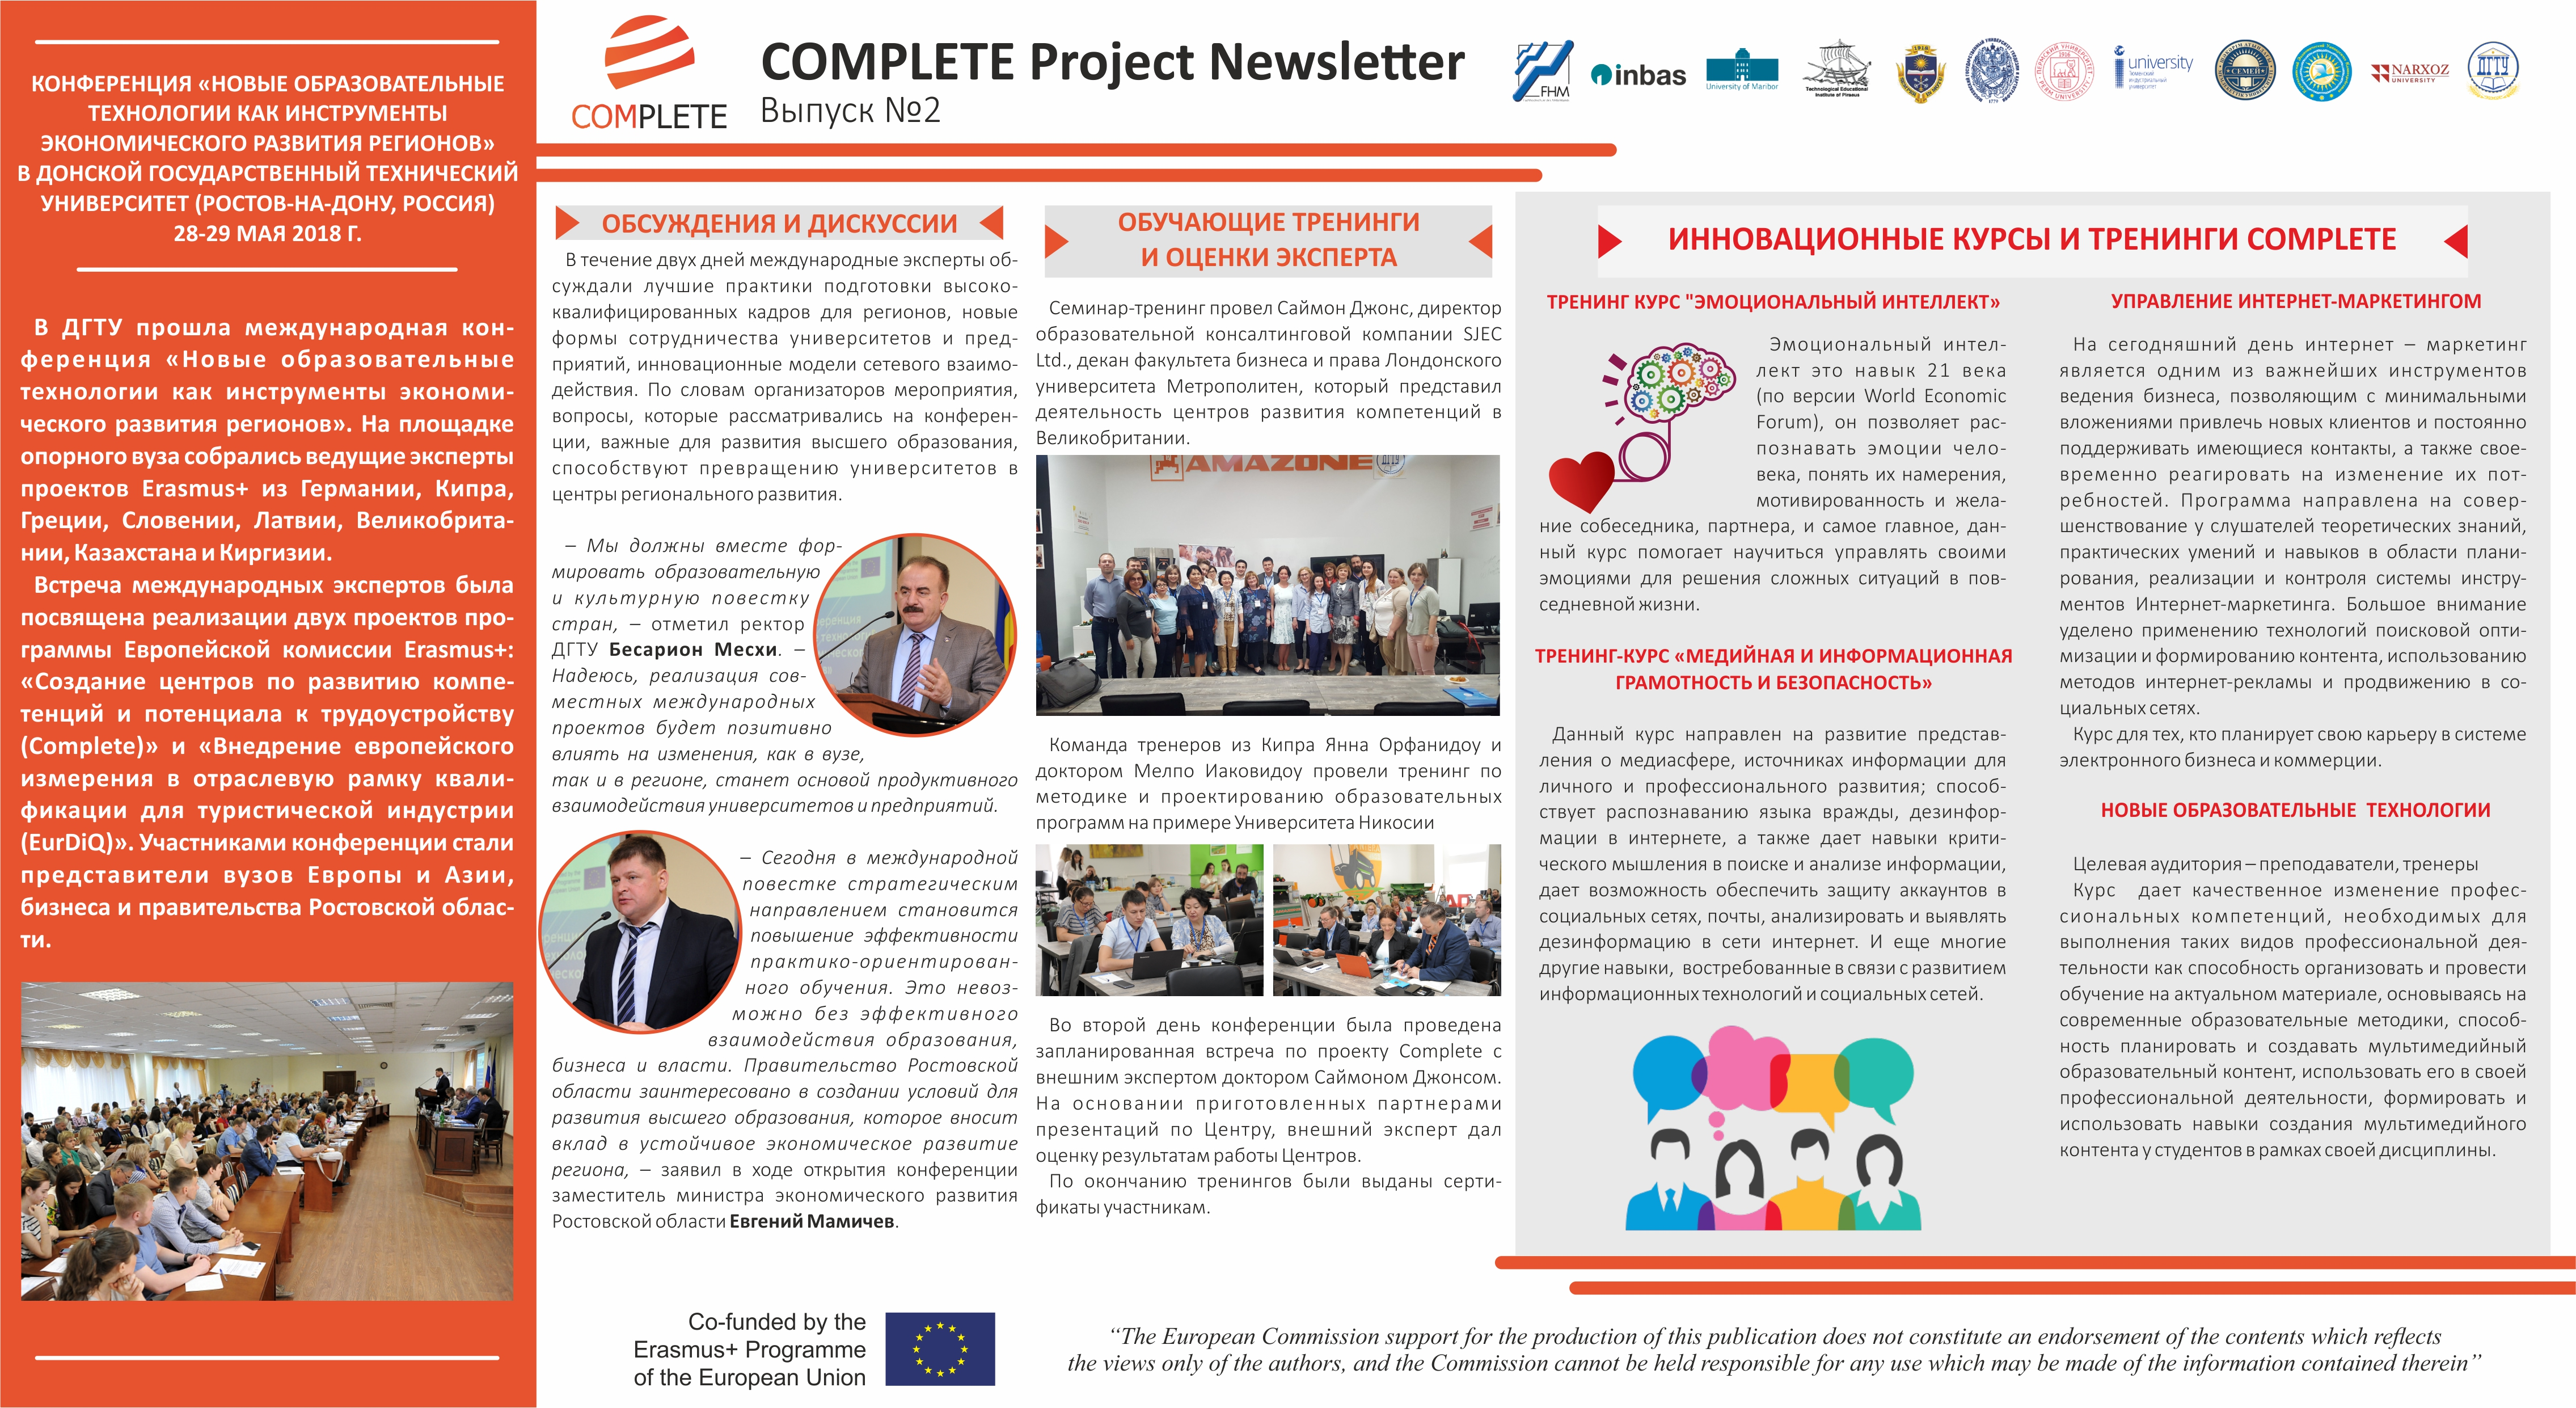 Complete - Establishment of Centres for Competence and Employability